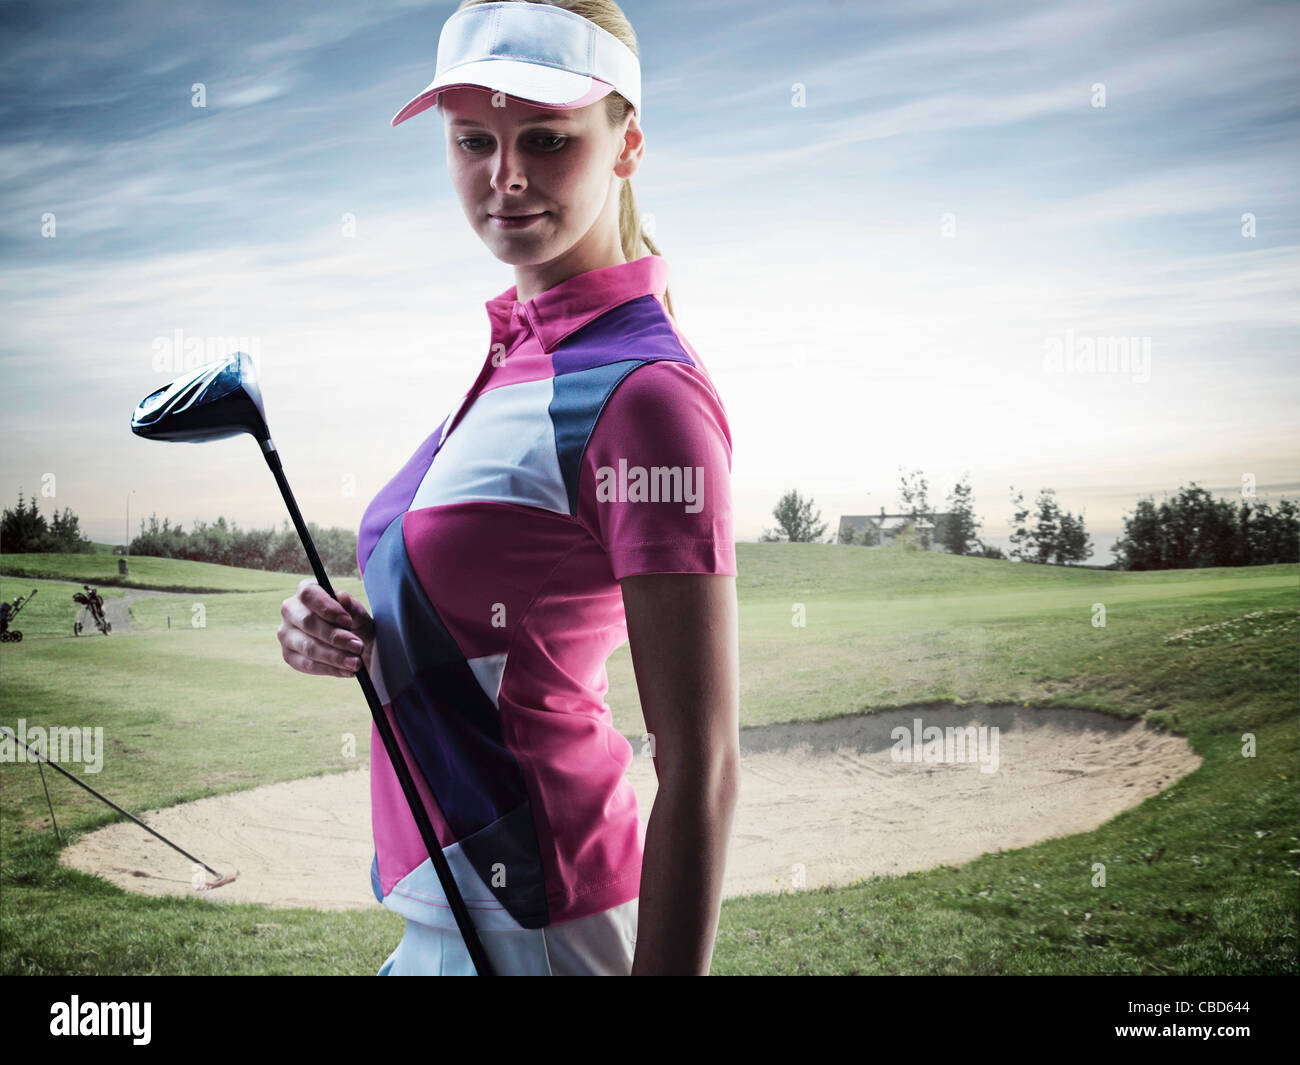 Woman carrying golf club on course - Stock Image